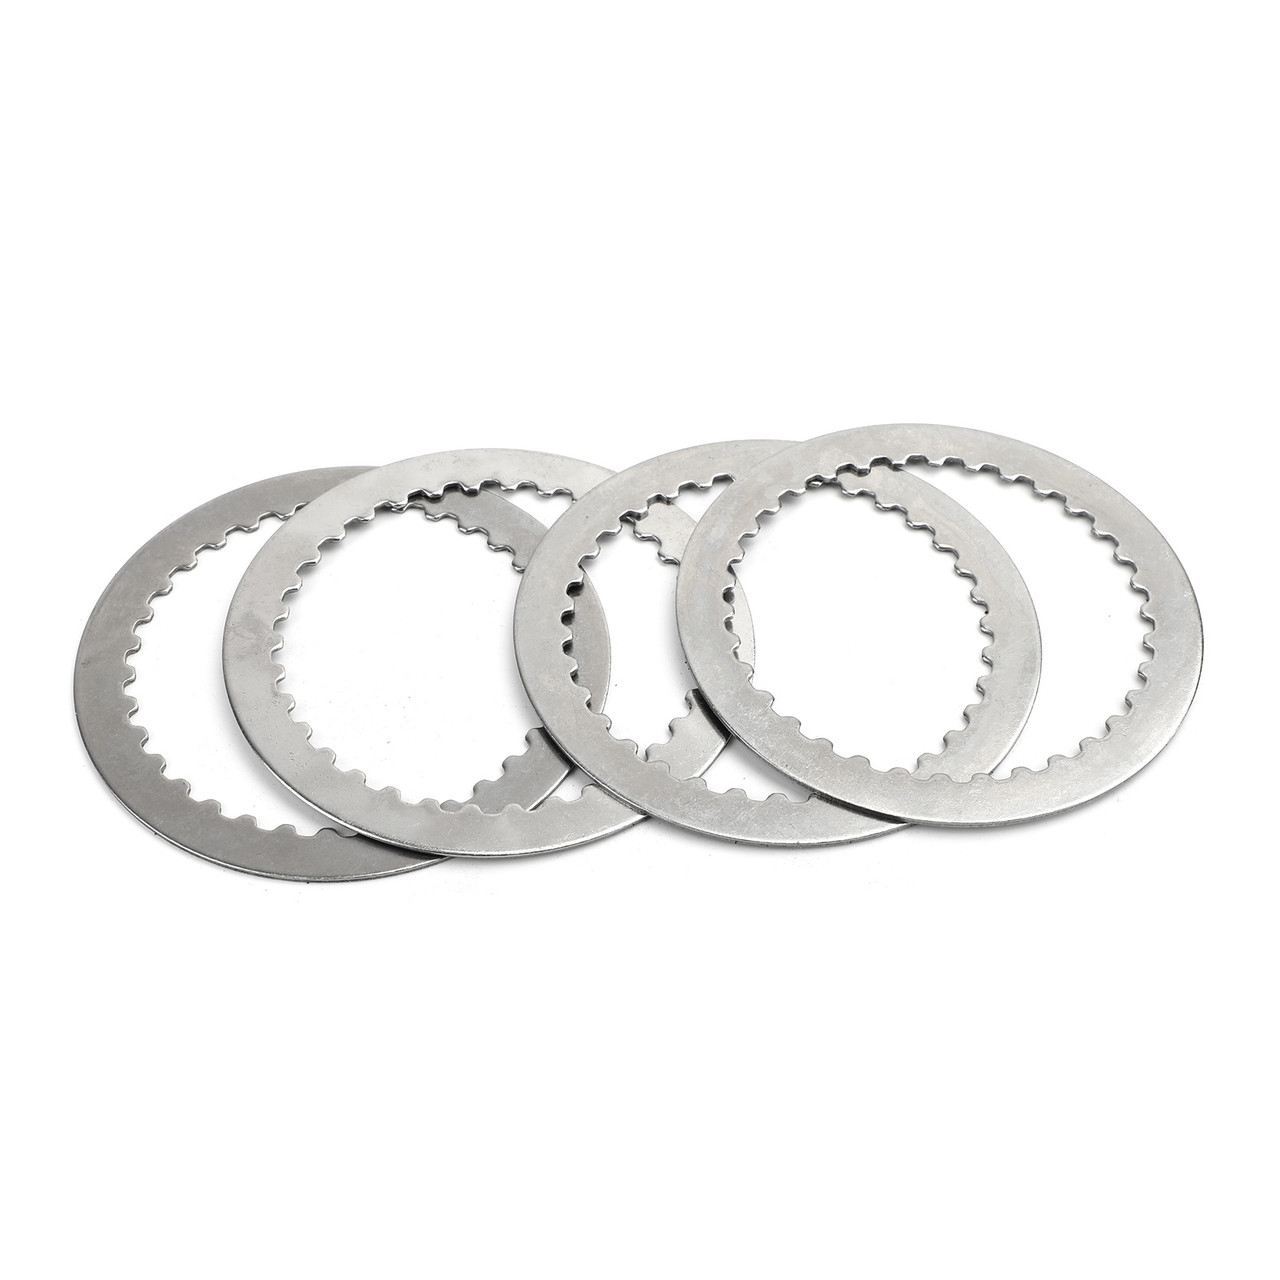 Clutch Plate Kit Fit For Honda CBR125R 04-06 CBR125RS 05-06 CBR125 04-09 TA200 (TA Shadow) 02-05